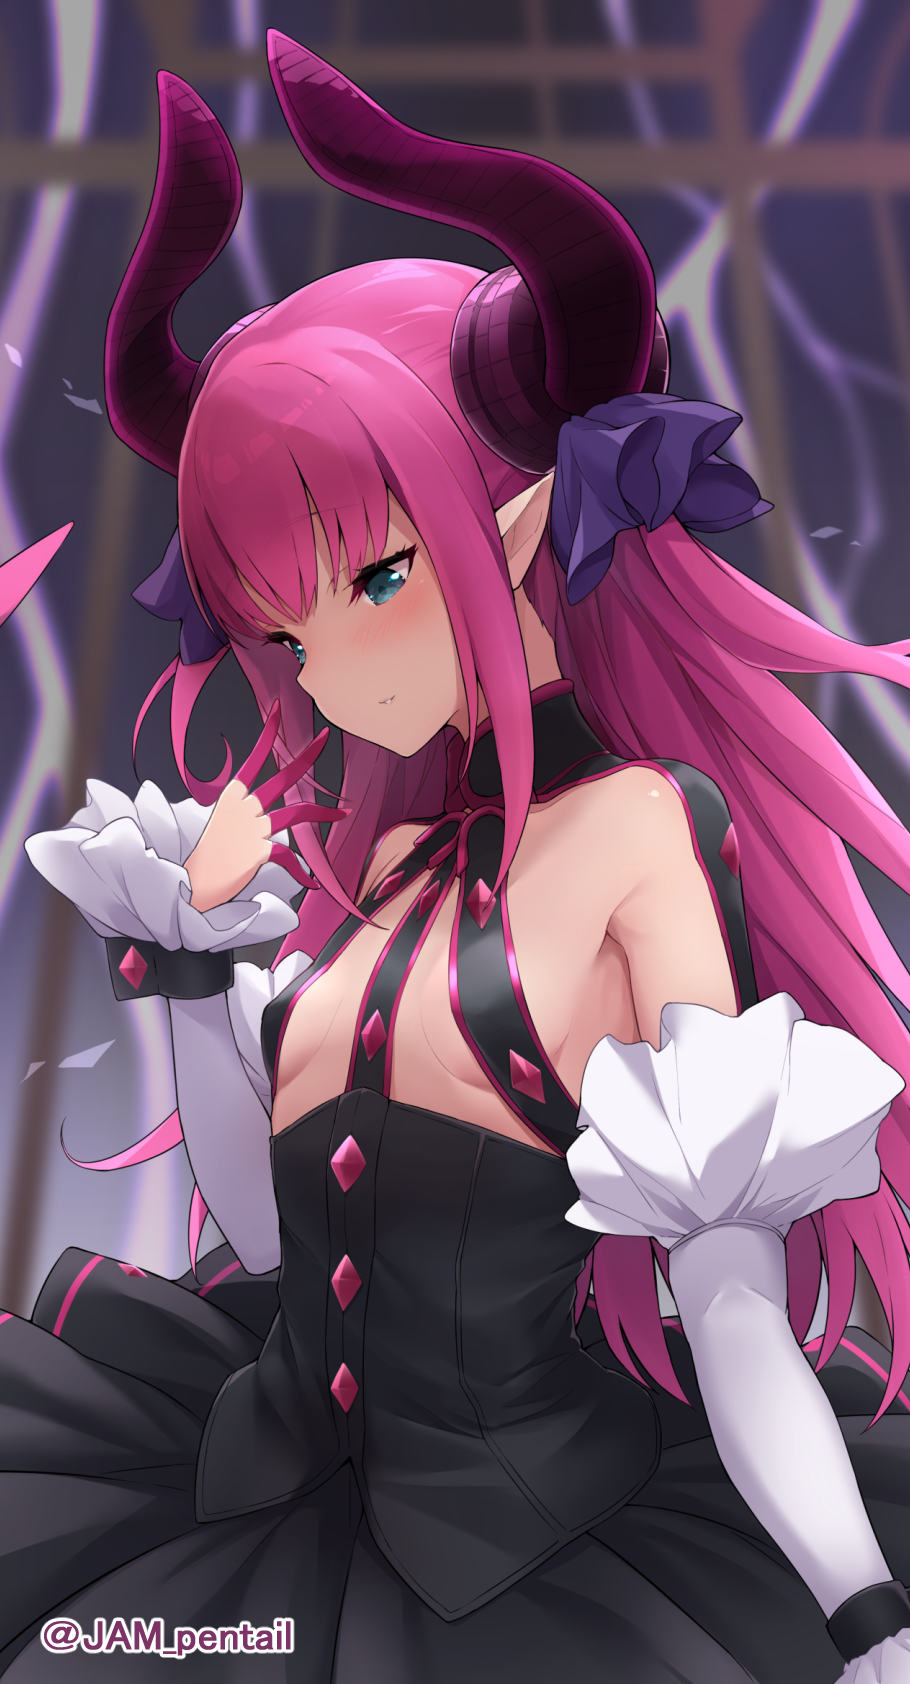 1girl blue_eyes blush breasts curled_horns detached_sleeves dragon_horns elizabeth_bathory_(fate) elizabeth_bathory_(fate)_(all) eyebrows_visible_through_hair fang fate/extra fate/extra_ccc fate/grand_order fate_(series) hair_between_eyes hair_ribbon highres horns jampen long_hair long_sleeves looking_away pink_hair pointy_ears purple_ribbon ribbon small_breasts solo two_side_up white_sleeves